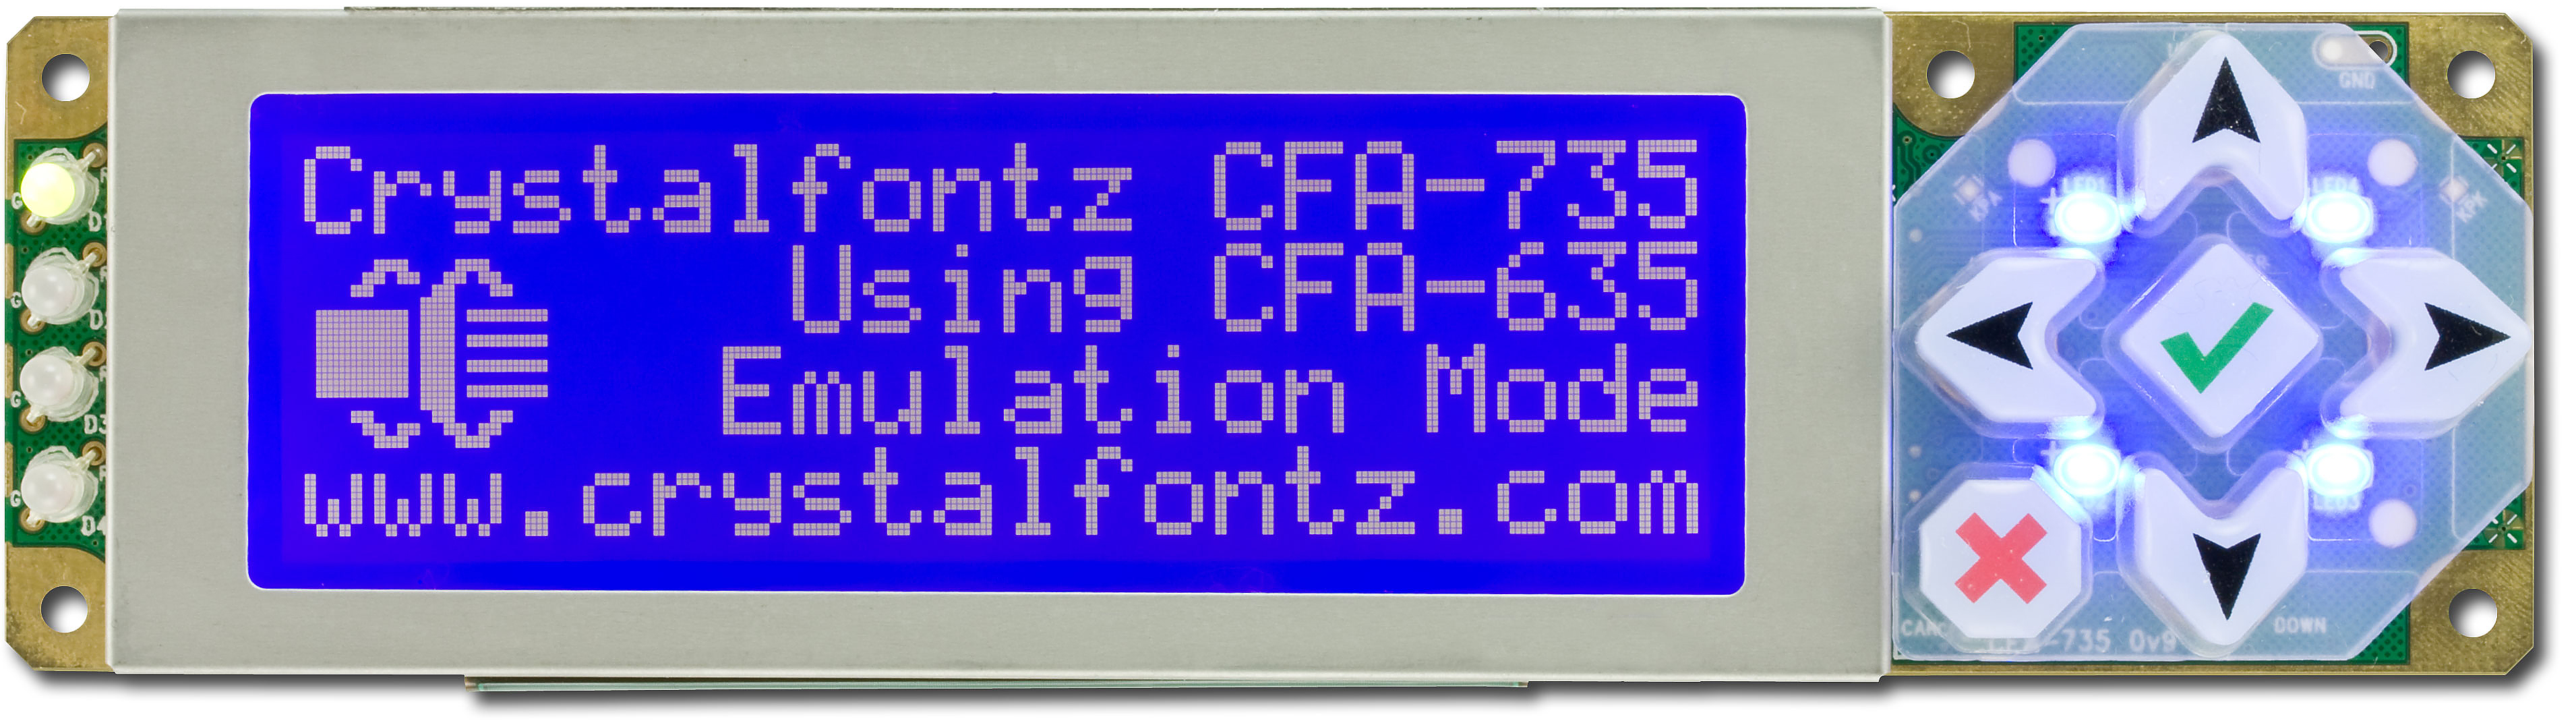 Crystalfontz LCD Module USB Driver for PC